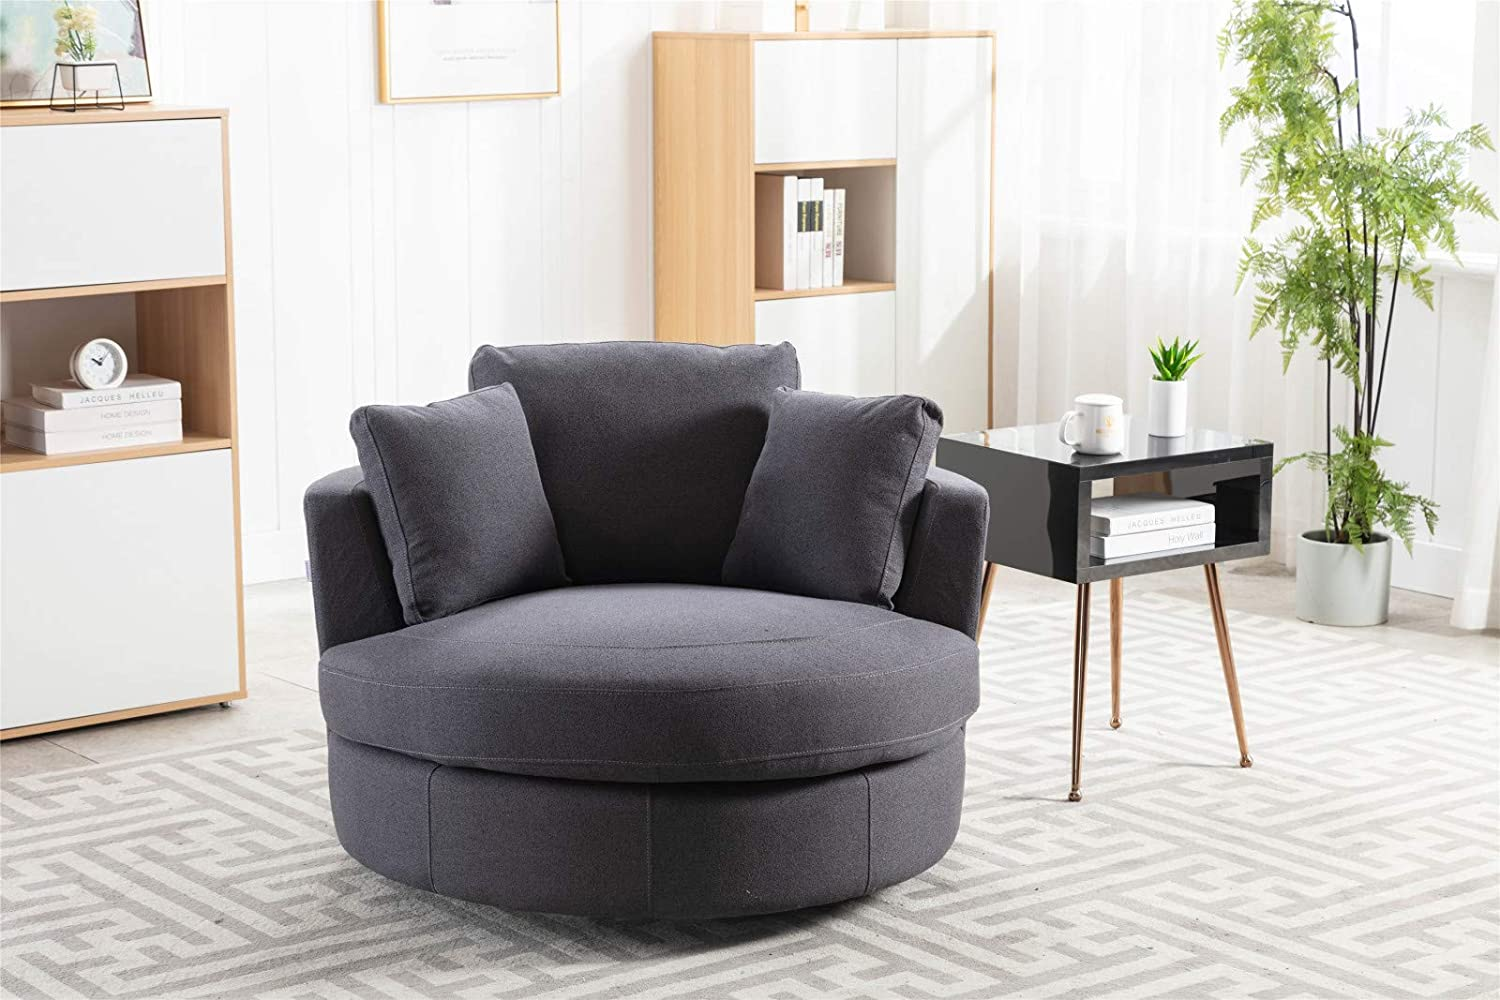 Pannow Modern Recommendation Akili Swivel Barrel Chair Sofa Barr SEAL limited product Accent